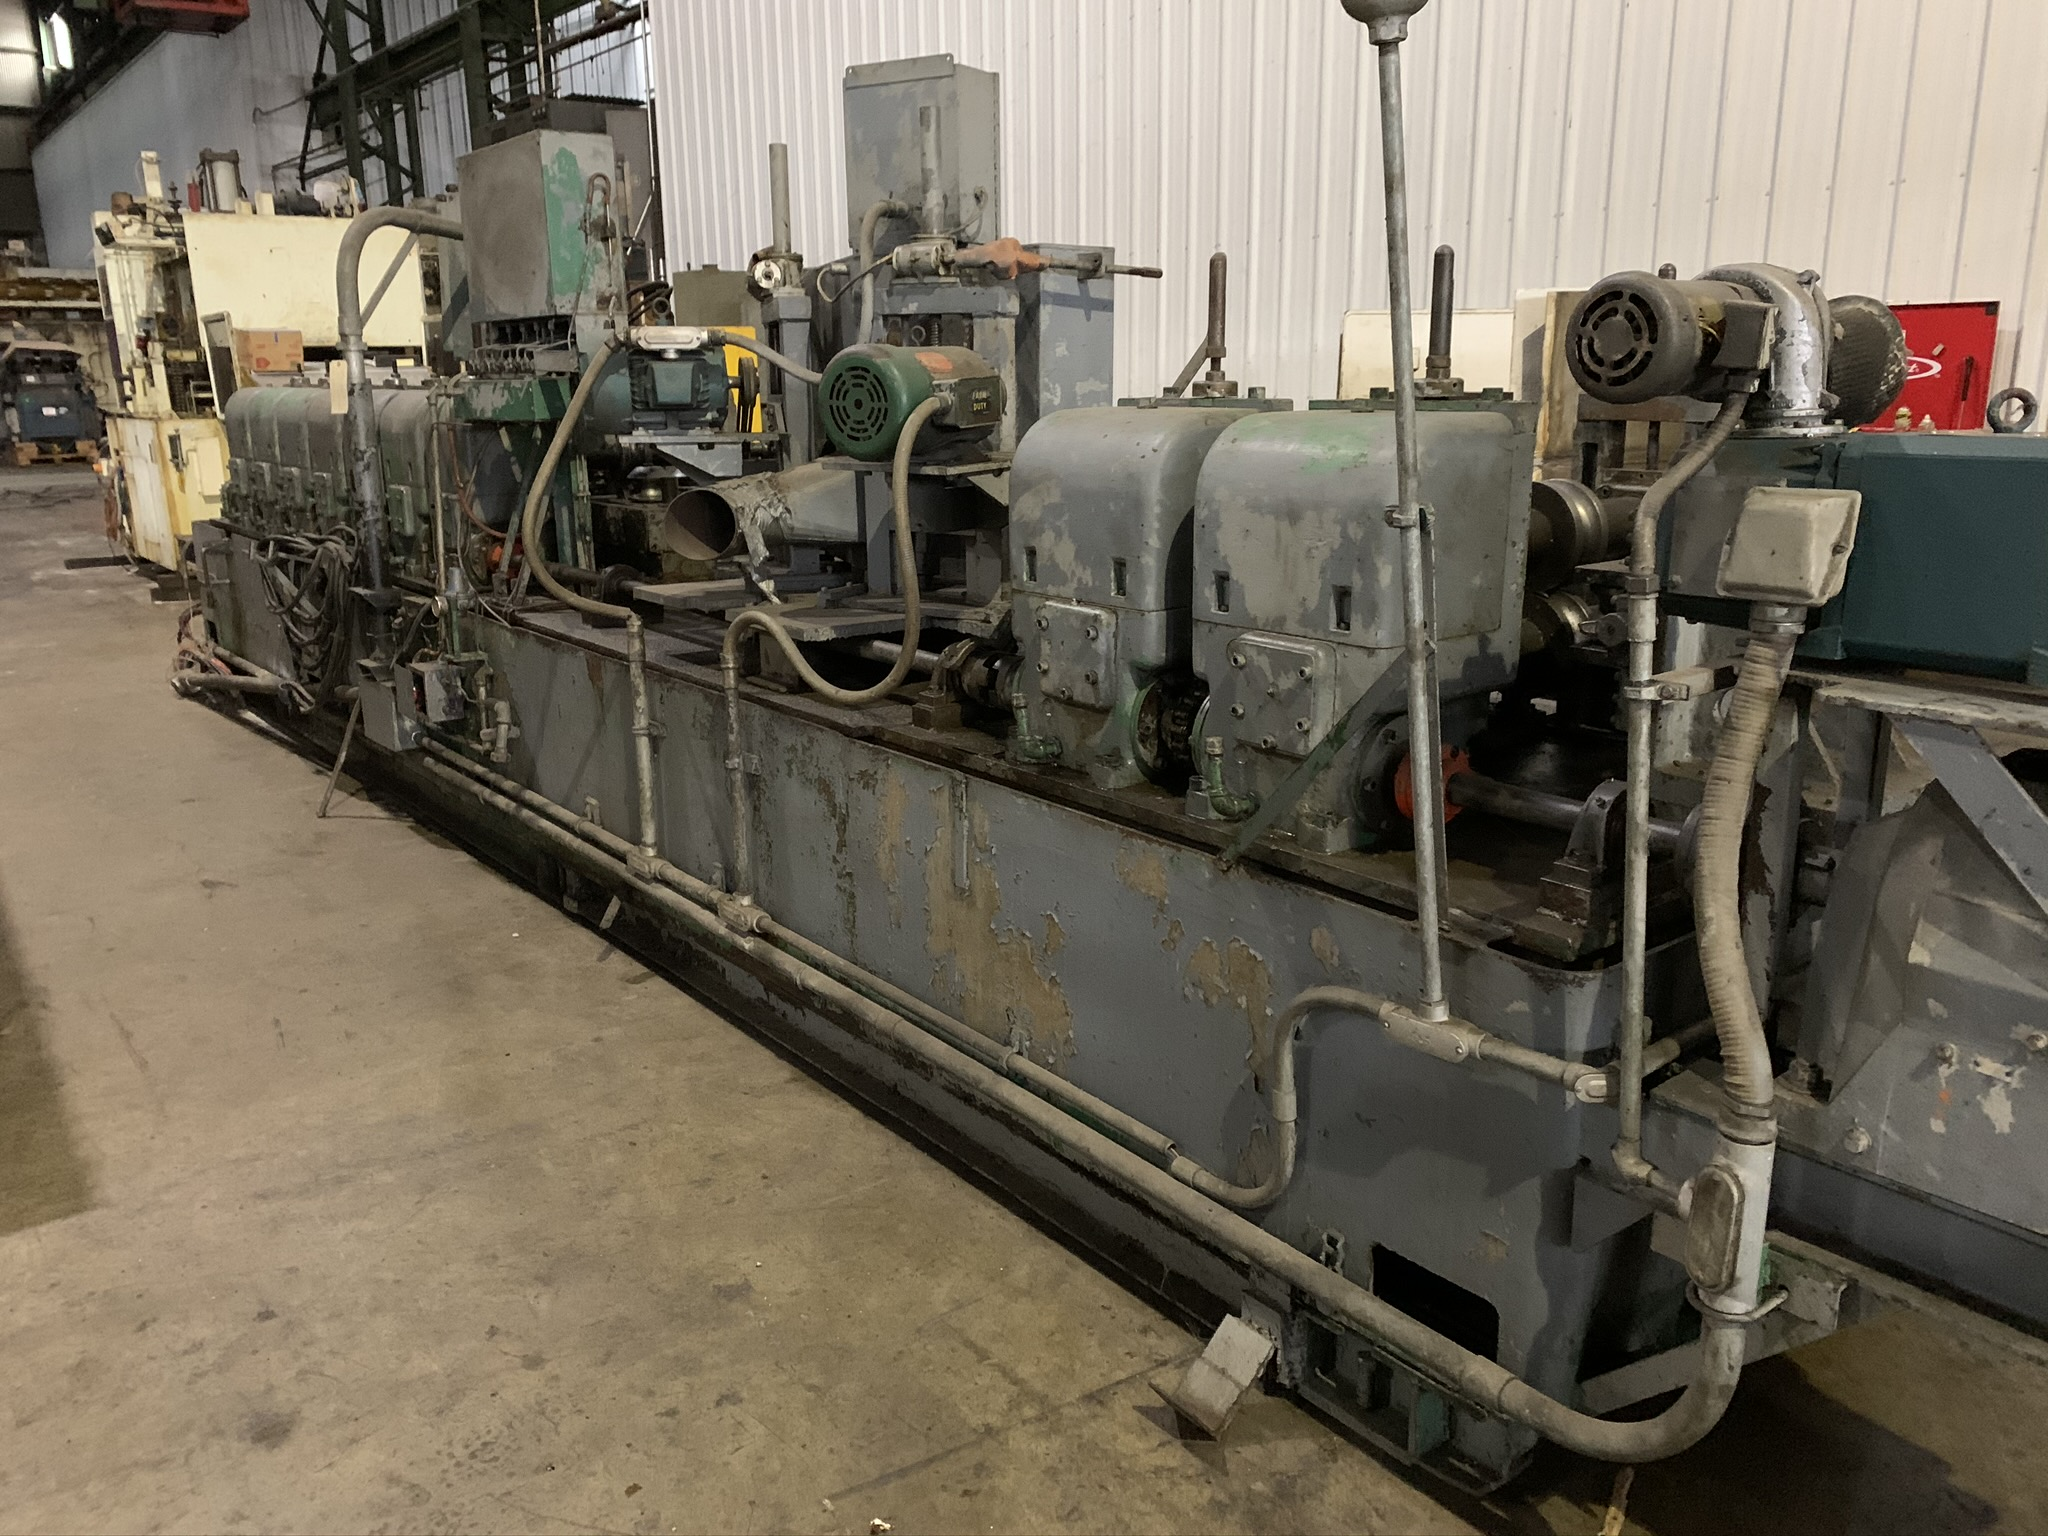 YODER MODEL M2.5 TUBE MILL; S/N C0-1424, 9-STAND 4-BREADKDOWN STANDS, (3) FINISHING STANDS, (2) - Image 8 of 8